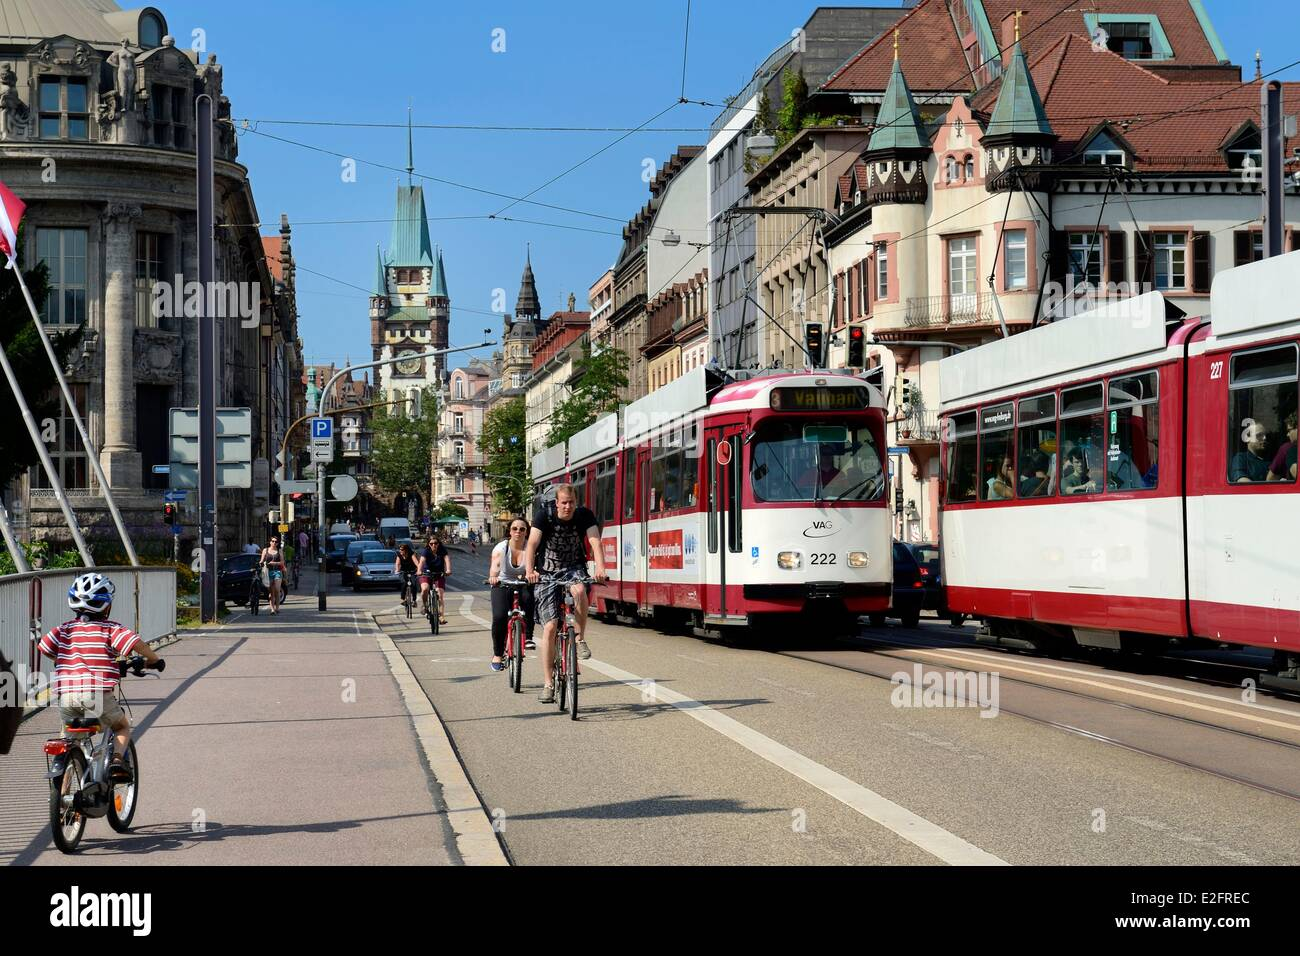 germany baden wurttemberg freiburg im breisgau tram on the street stock photo 70418500 alamy. Black Bedroom Furniture Sets. Home Design Ideas